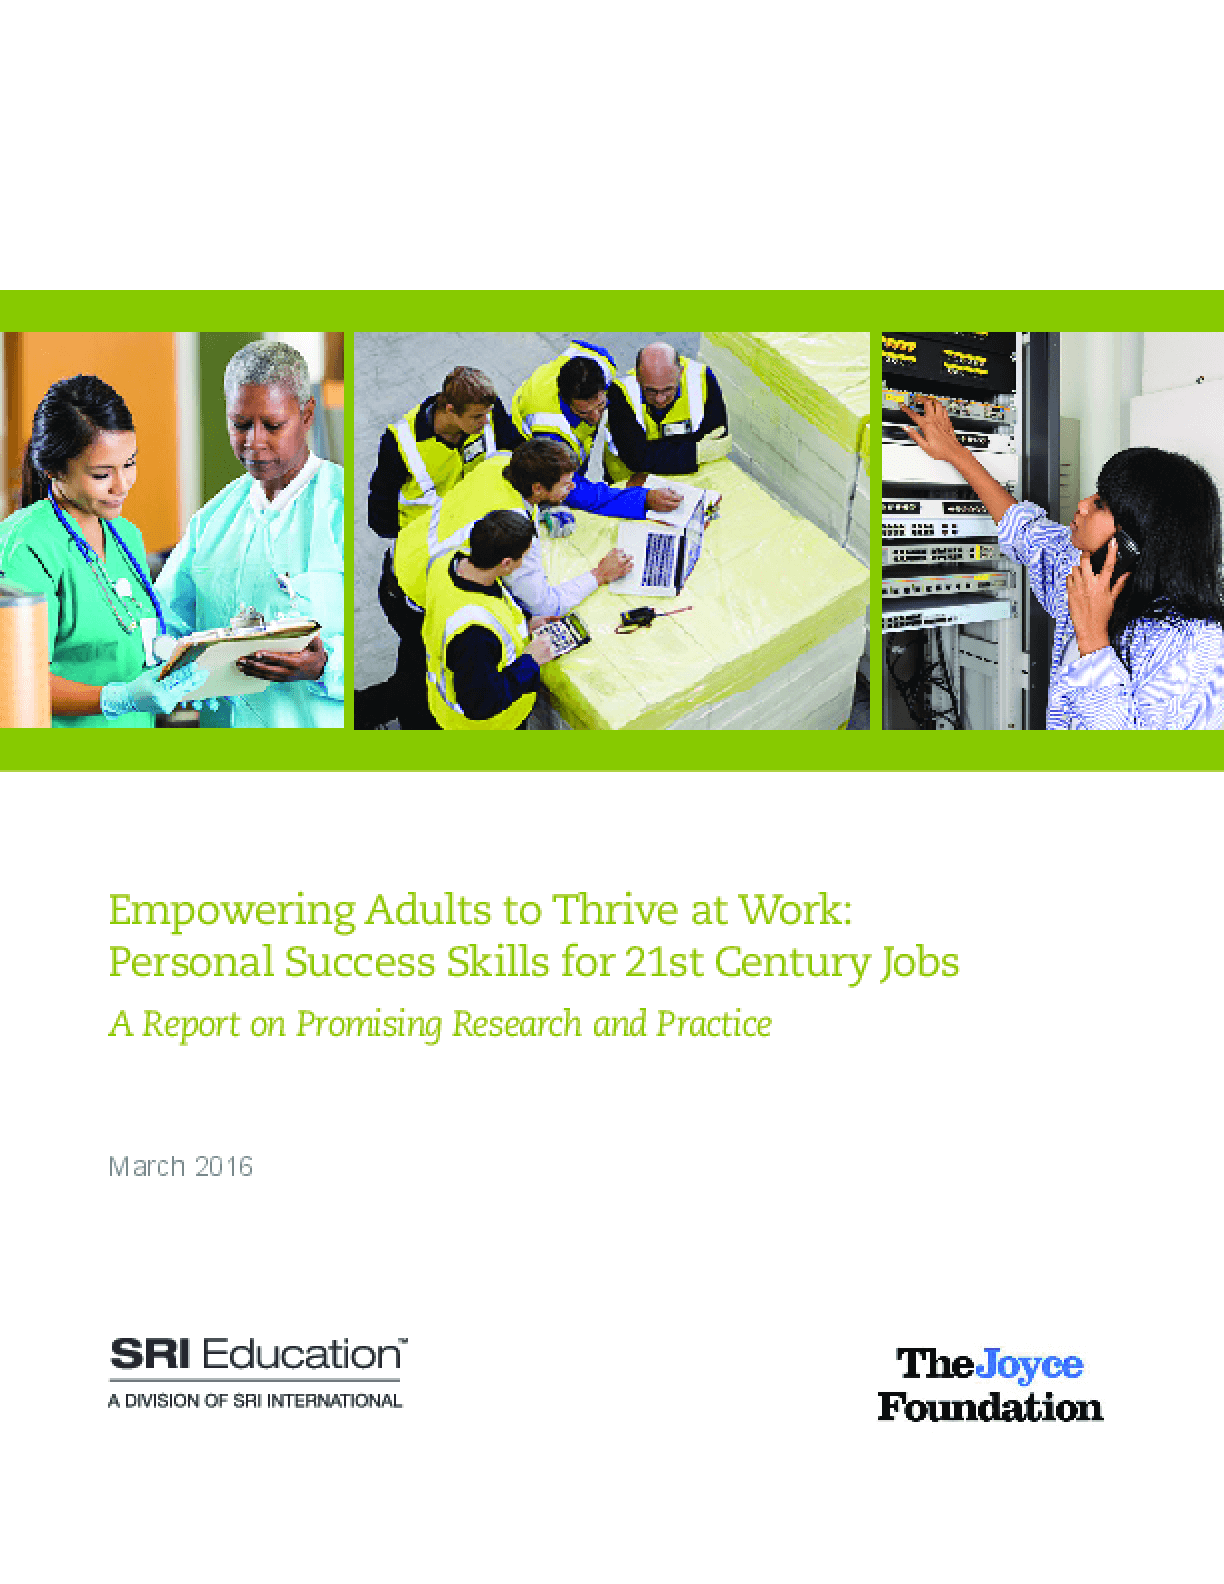 Empowering Adults to Thrive at Work: Personal Success Skills for 21st Century Jobs: A Report on Promising Research and Practice